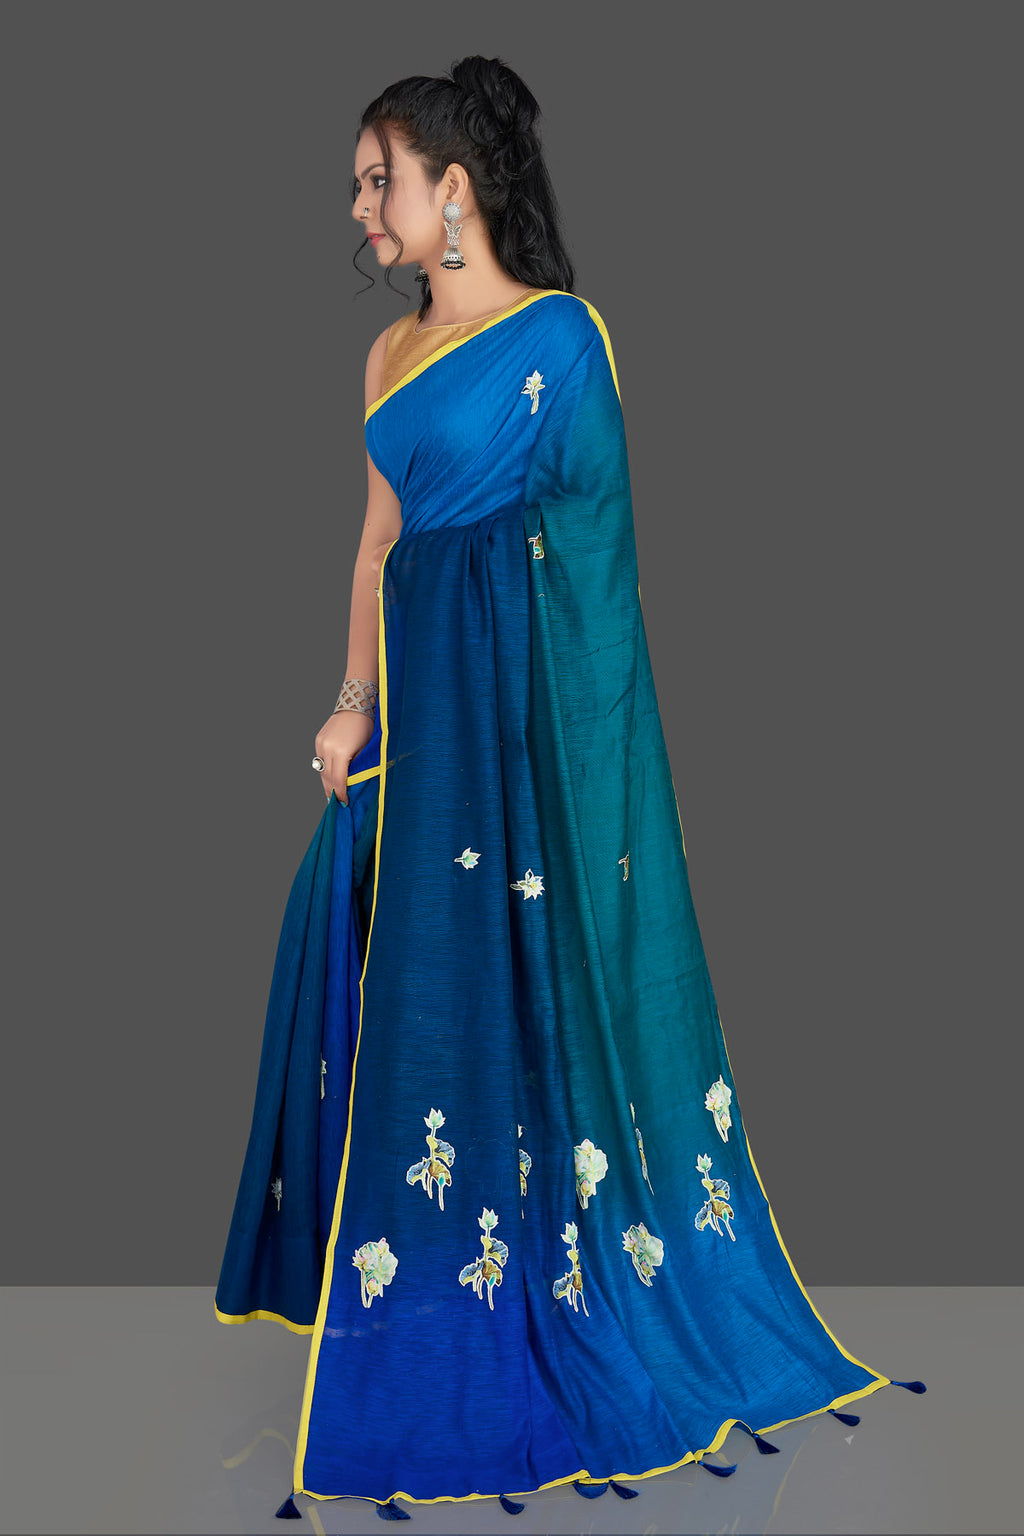 Shop blue and green applique work linen saree online in USA with white floral saree blouse. Radiate elegance with designer sarees with blouse, linen sarees from Pure Elegance Indian fashion boutique in USA. We bring a especially curated collection of ethnic saris for Indian women in USA under one roof!-full view